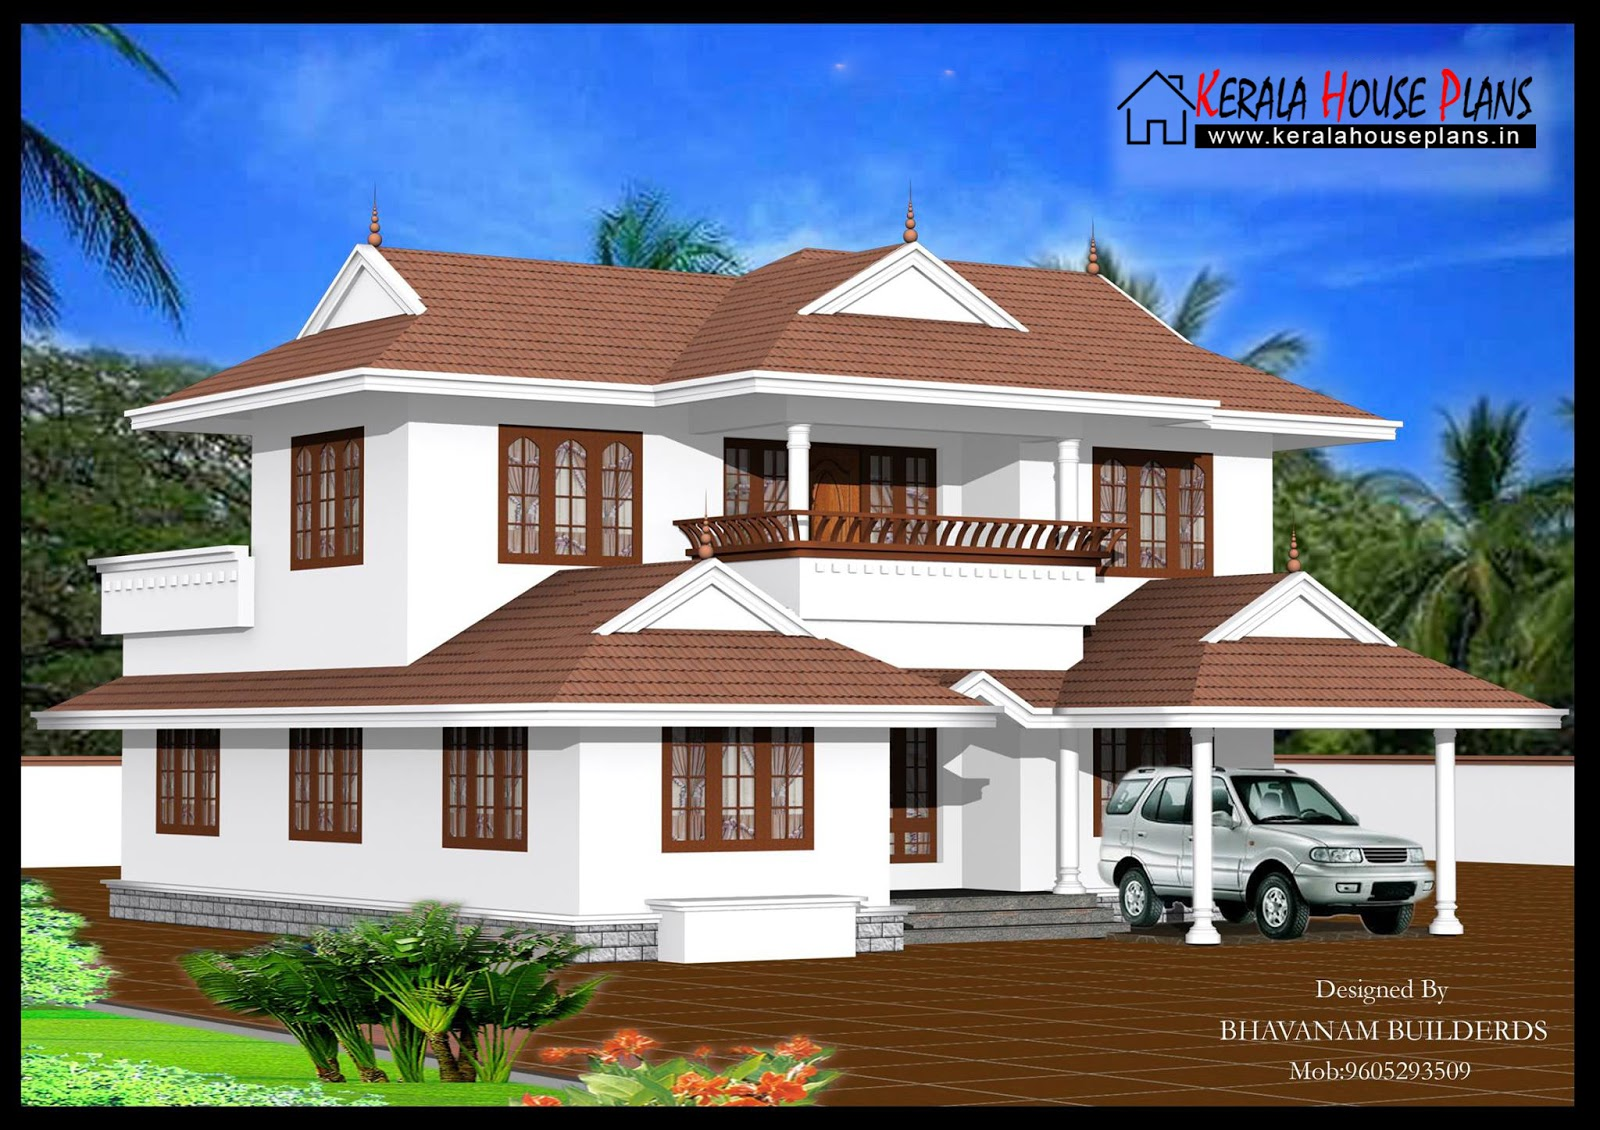 2000 sqft traditional kerala house design kerala house for Kerala traditional home plans